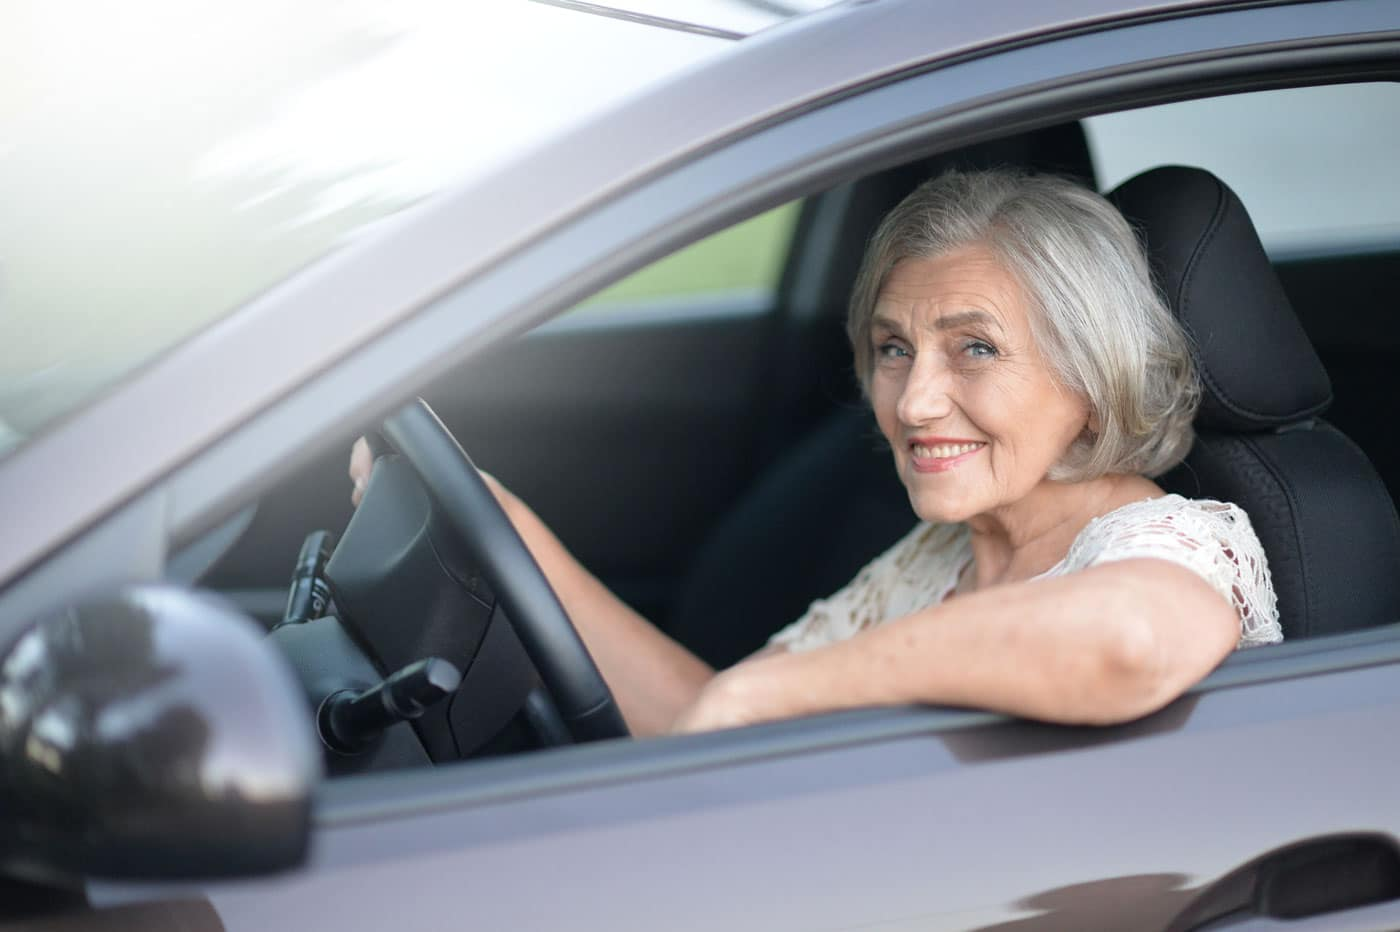 Elderly woman smiling while dirivng vehicle